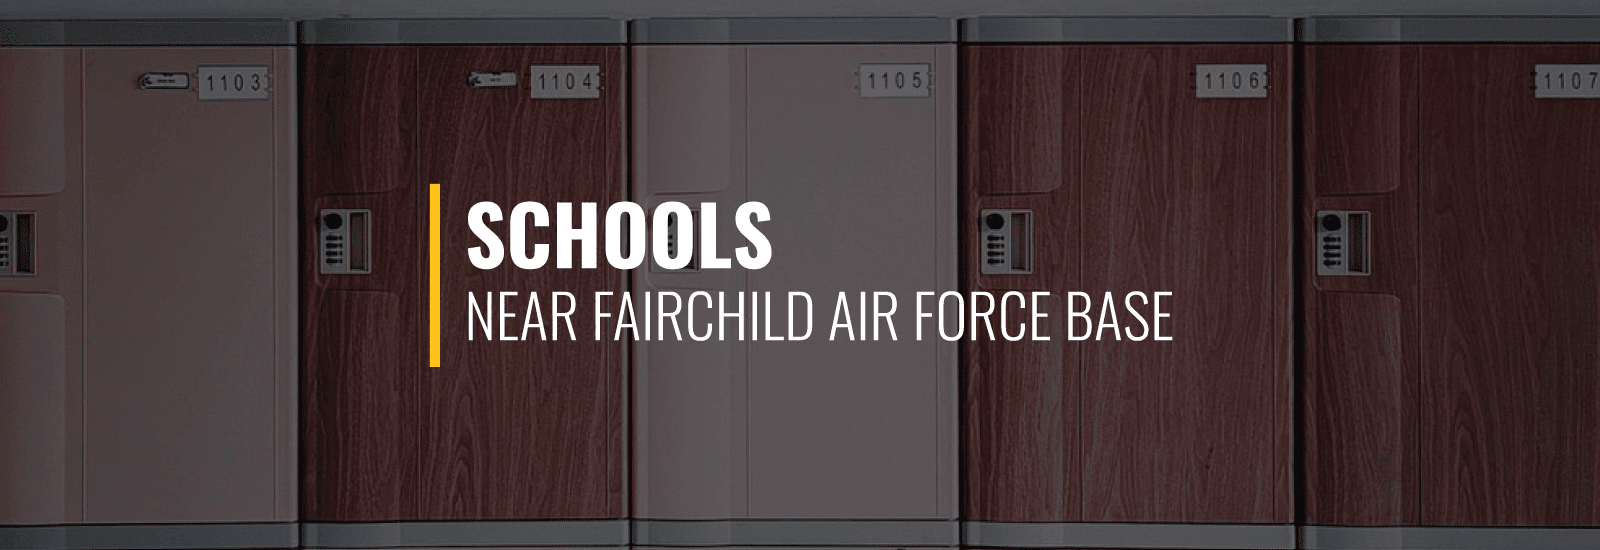 Fairchild AFB Schools